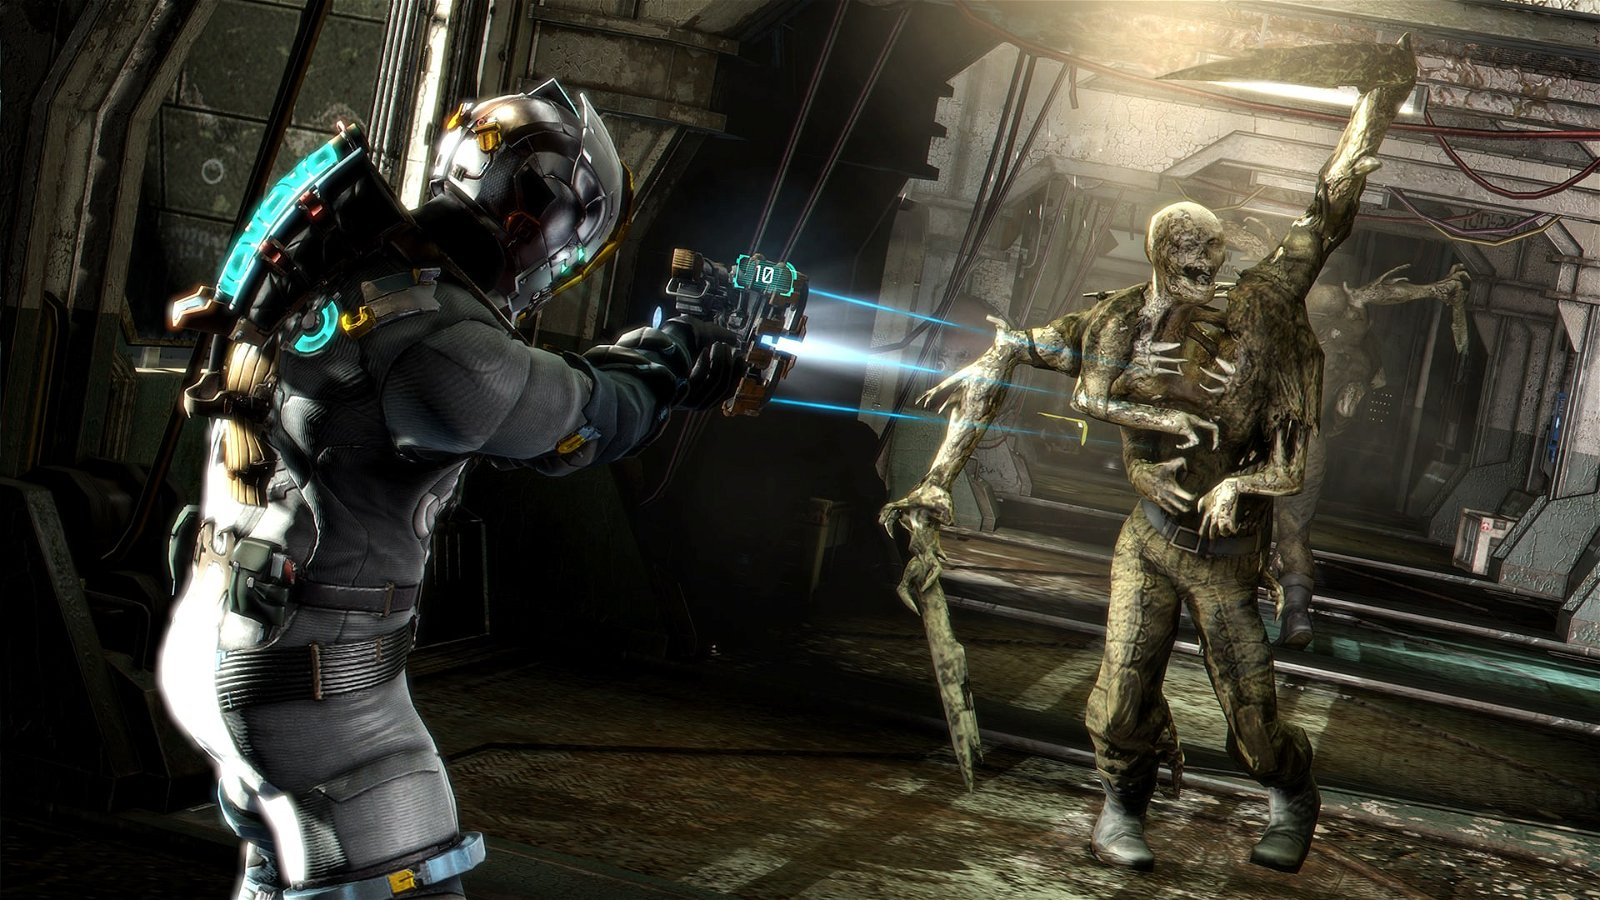 Dead Space Remake Reportedly Coming, Inspired by Resident Evil 2 Remake